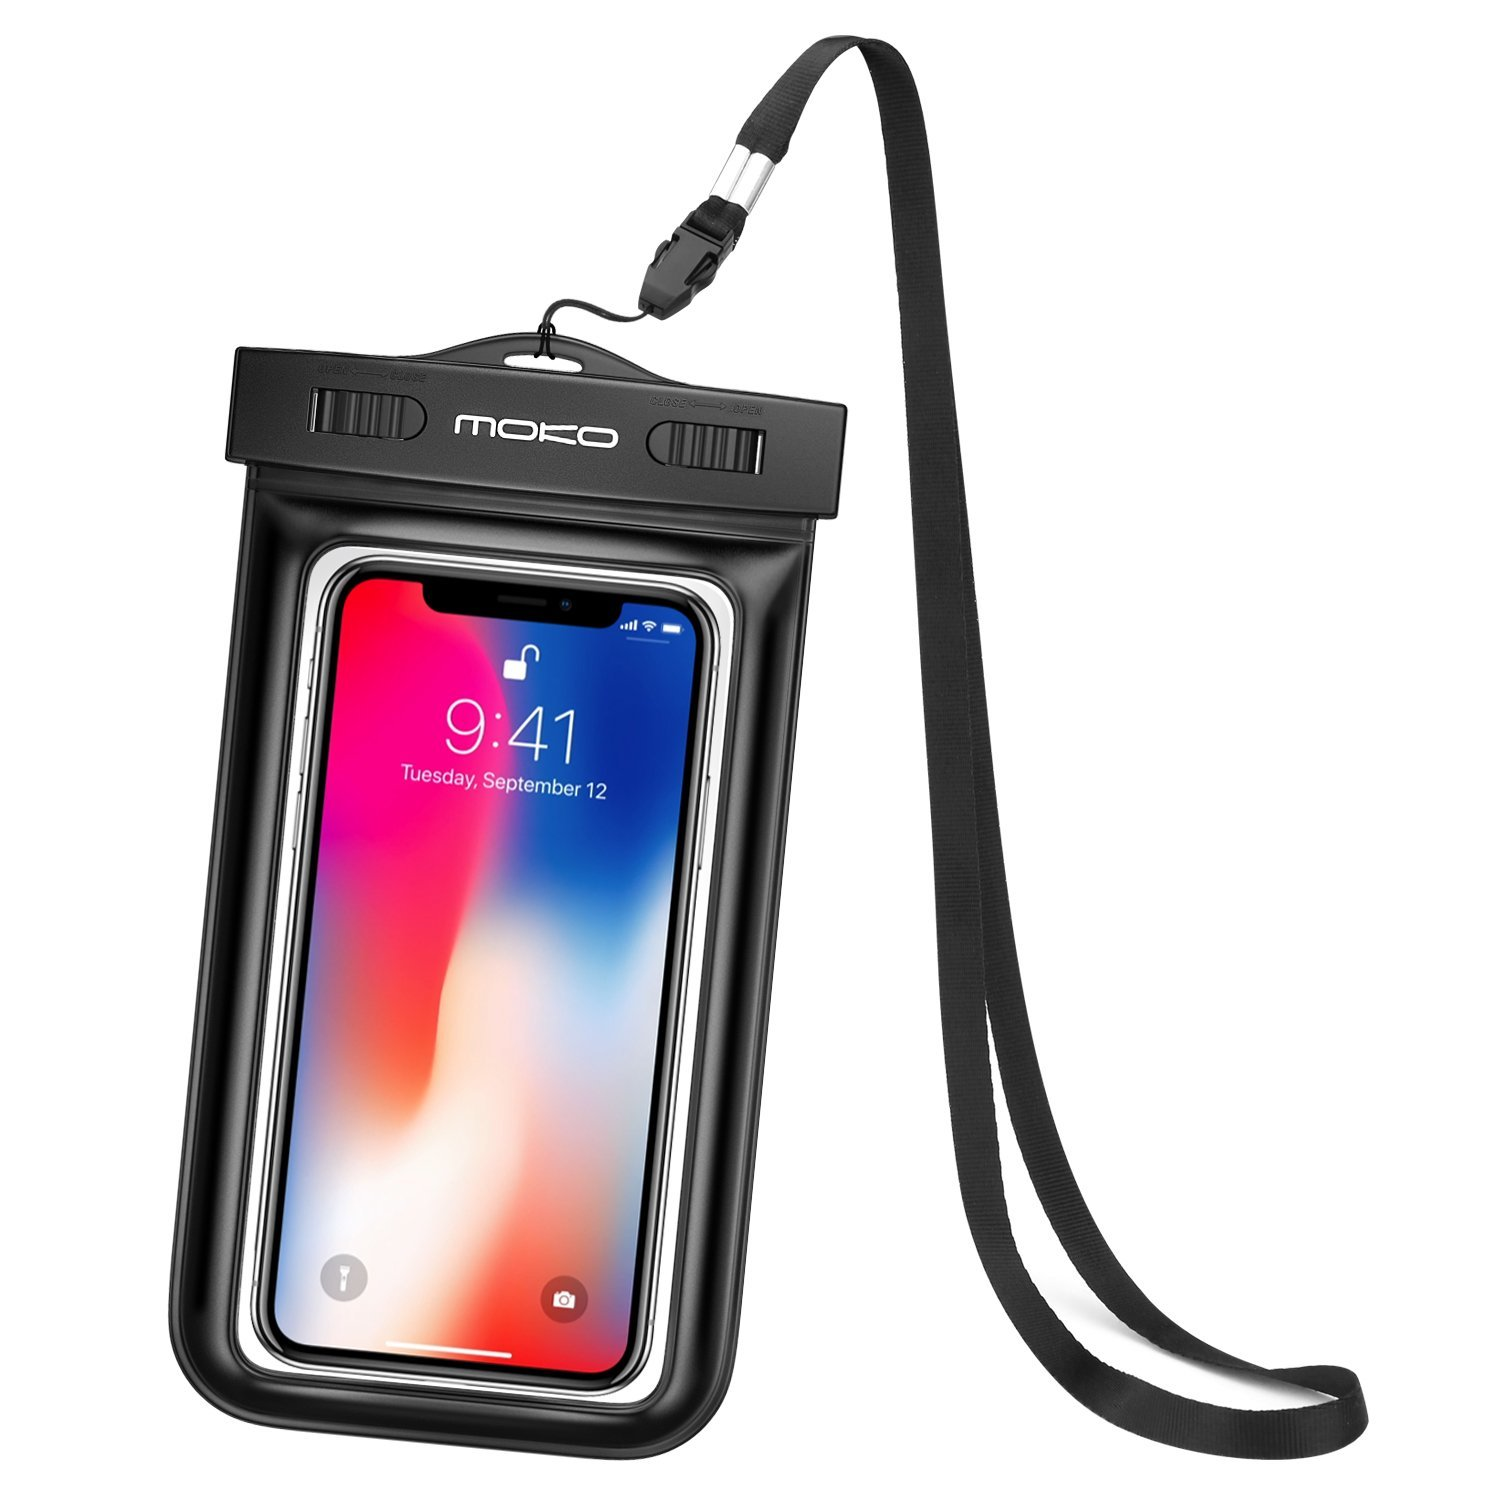 Waterproof Phone Case, Universal Waterproof CellPhone Dry Bag Pouch with Neck Strap for iPhone X/8 Plus/8/7/6S Plus, Galaxy S9/S9+/S8/S8+/S7 Edge, MOTO, LG, BLU, Nexus & More